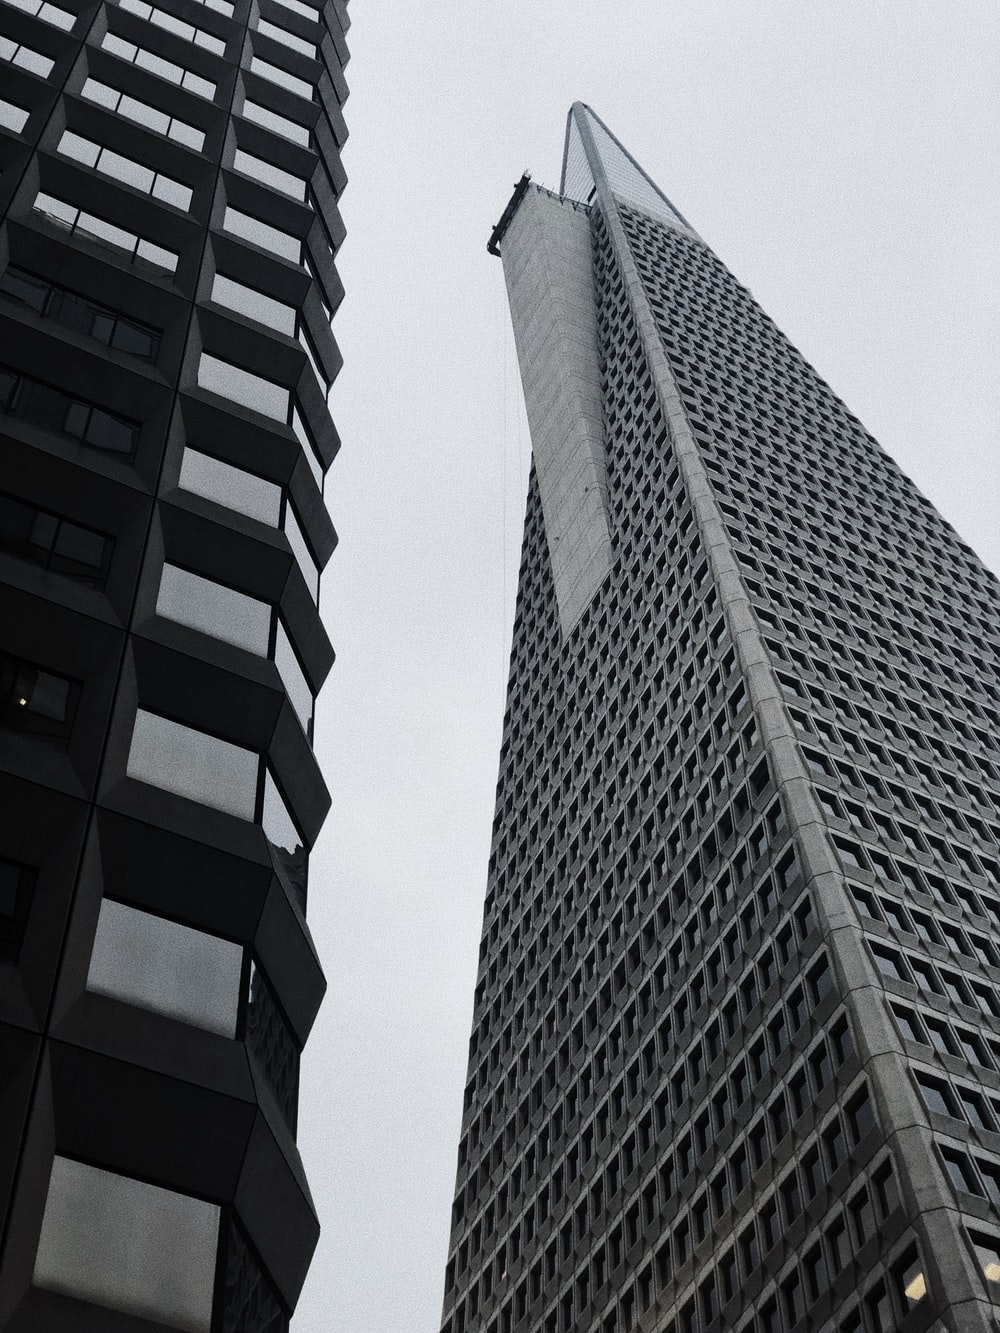 grey curtain buildings during daytime